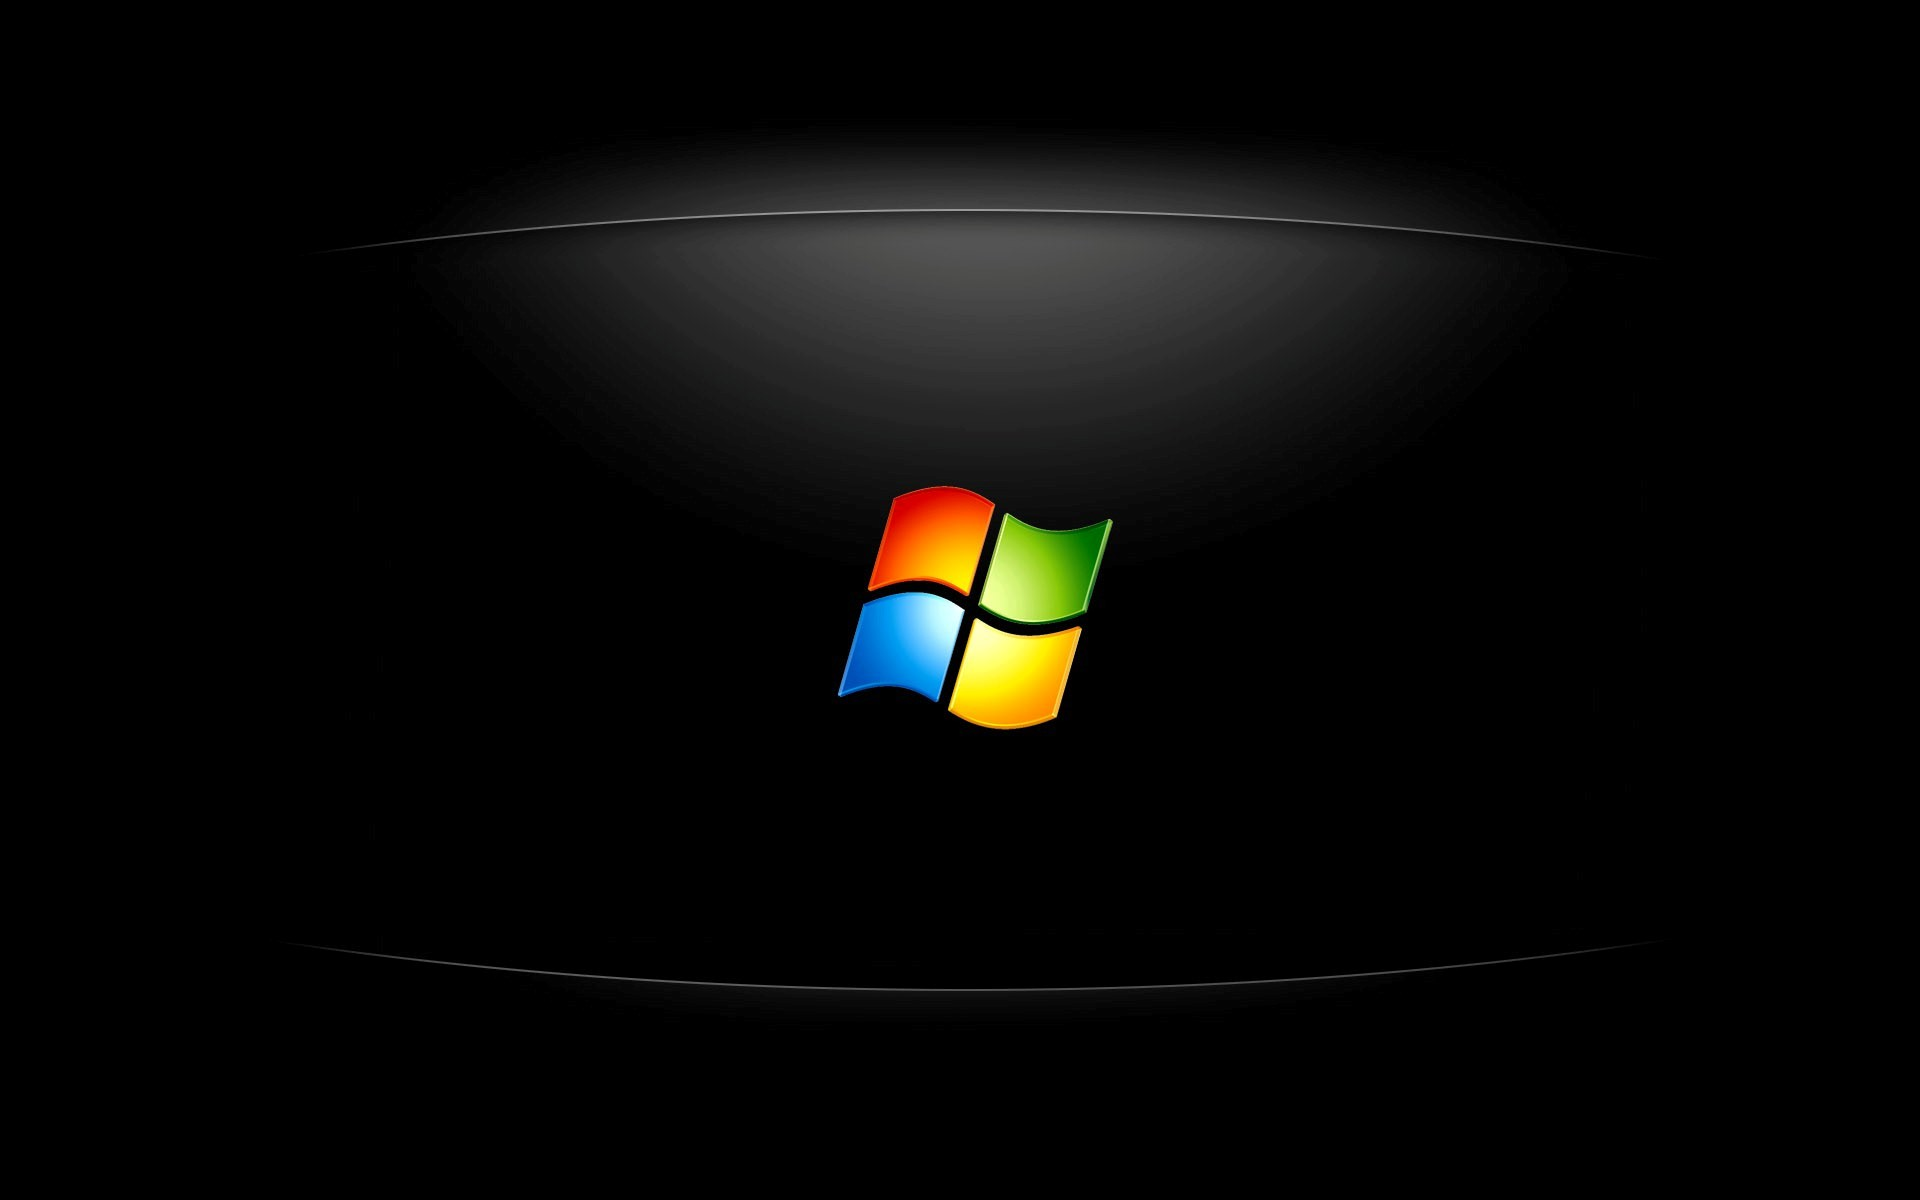 Windows Logo in Black Background HD Wallpapers 1920x1200